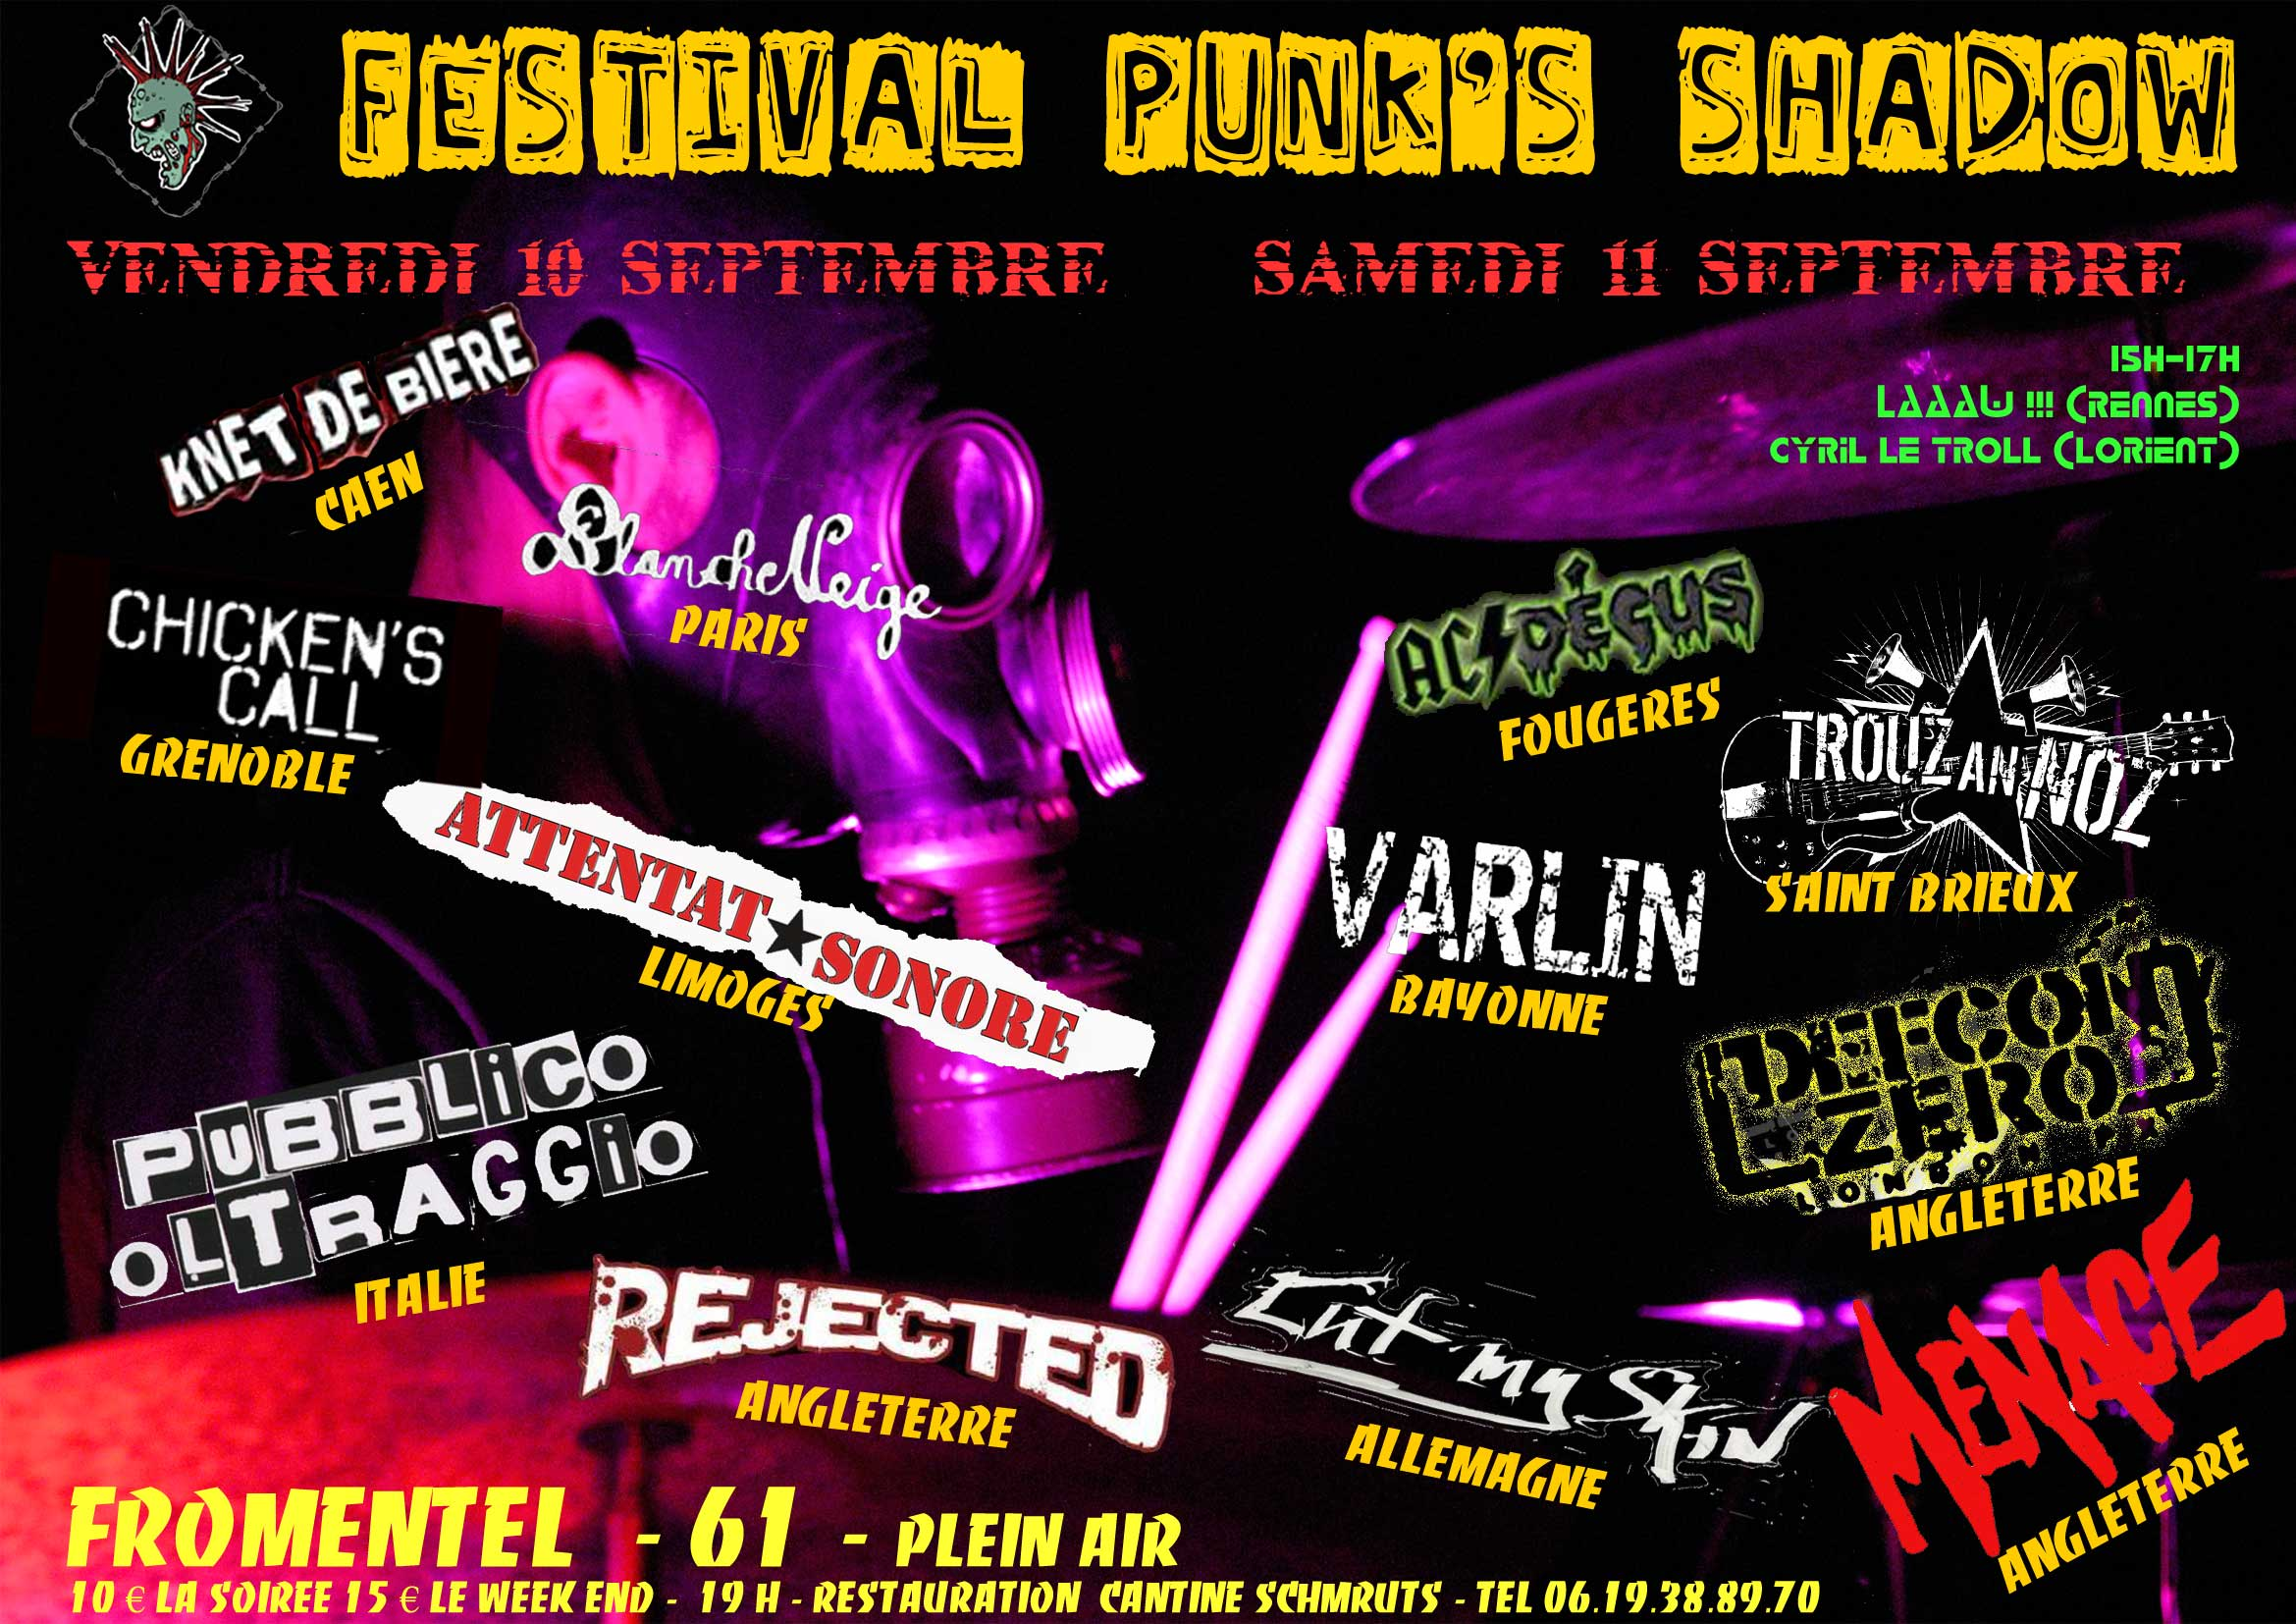 Attentat Sonore + Rejected + Cut My Skin au festival Punk's Shadow, le 10/09/10